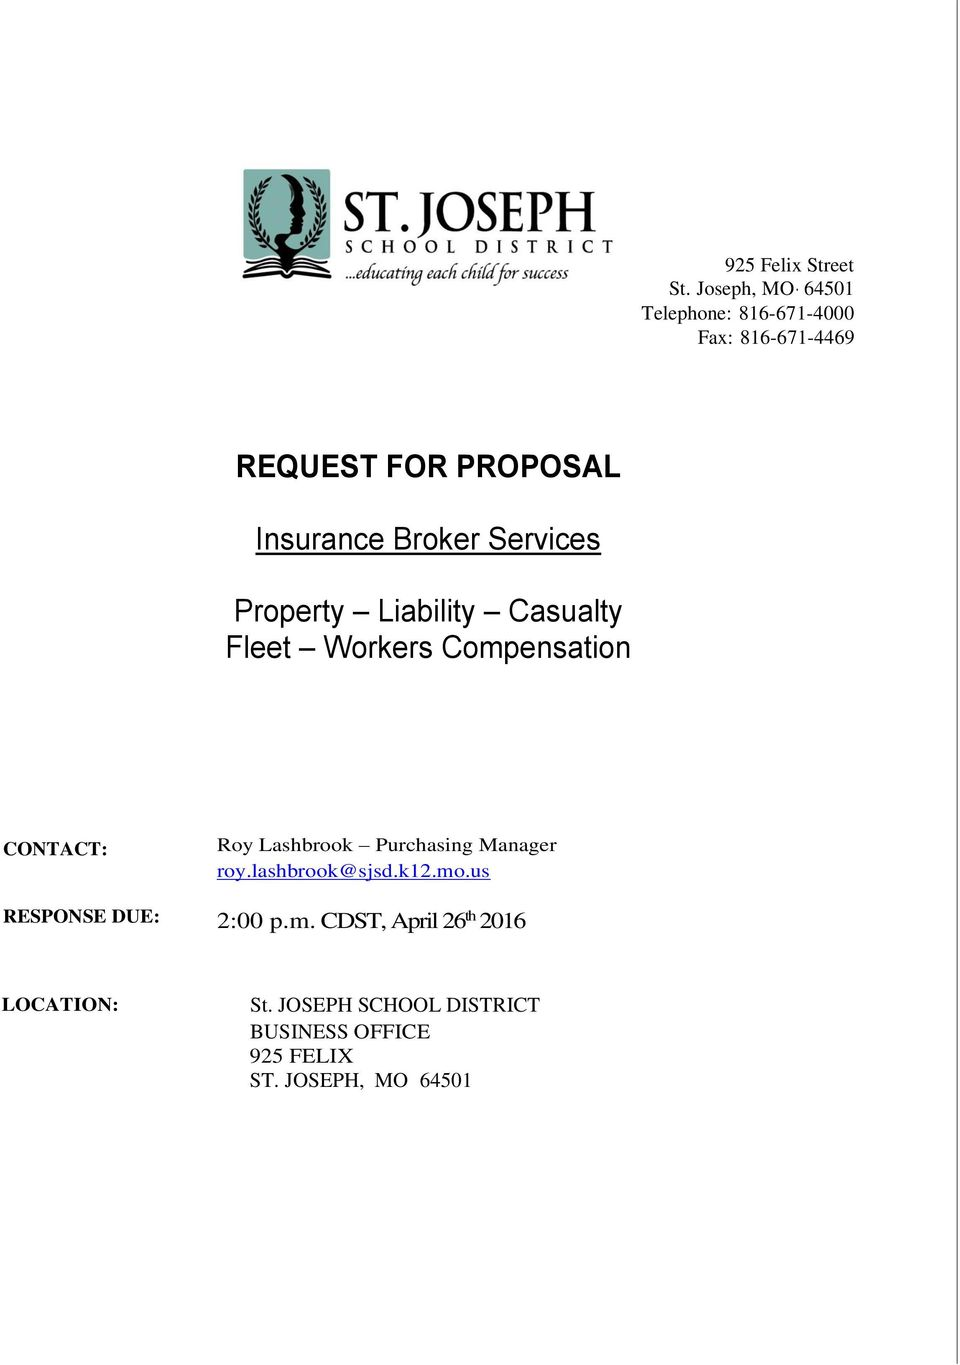 Broker Services Property Liability Casualty Fleet Workers Compensation CONTACT: RESPONSE DUE: